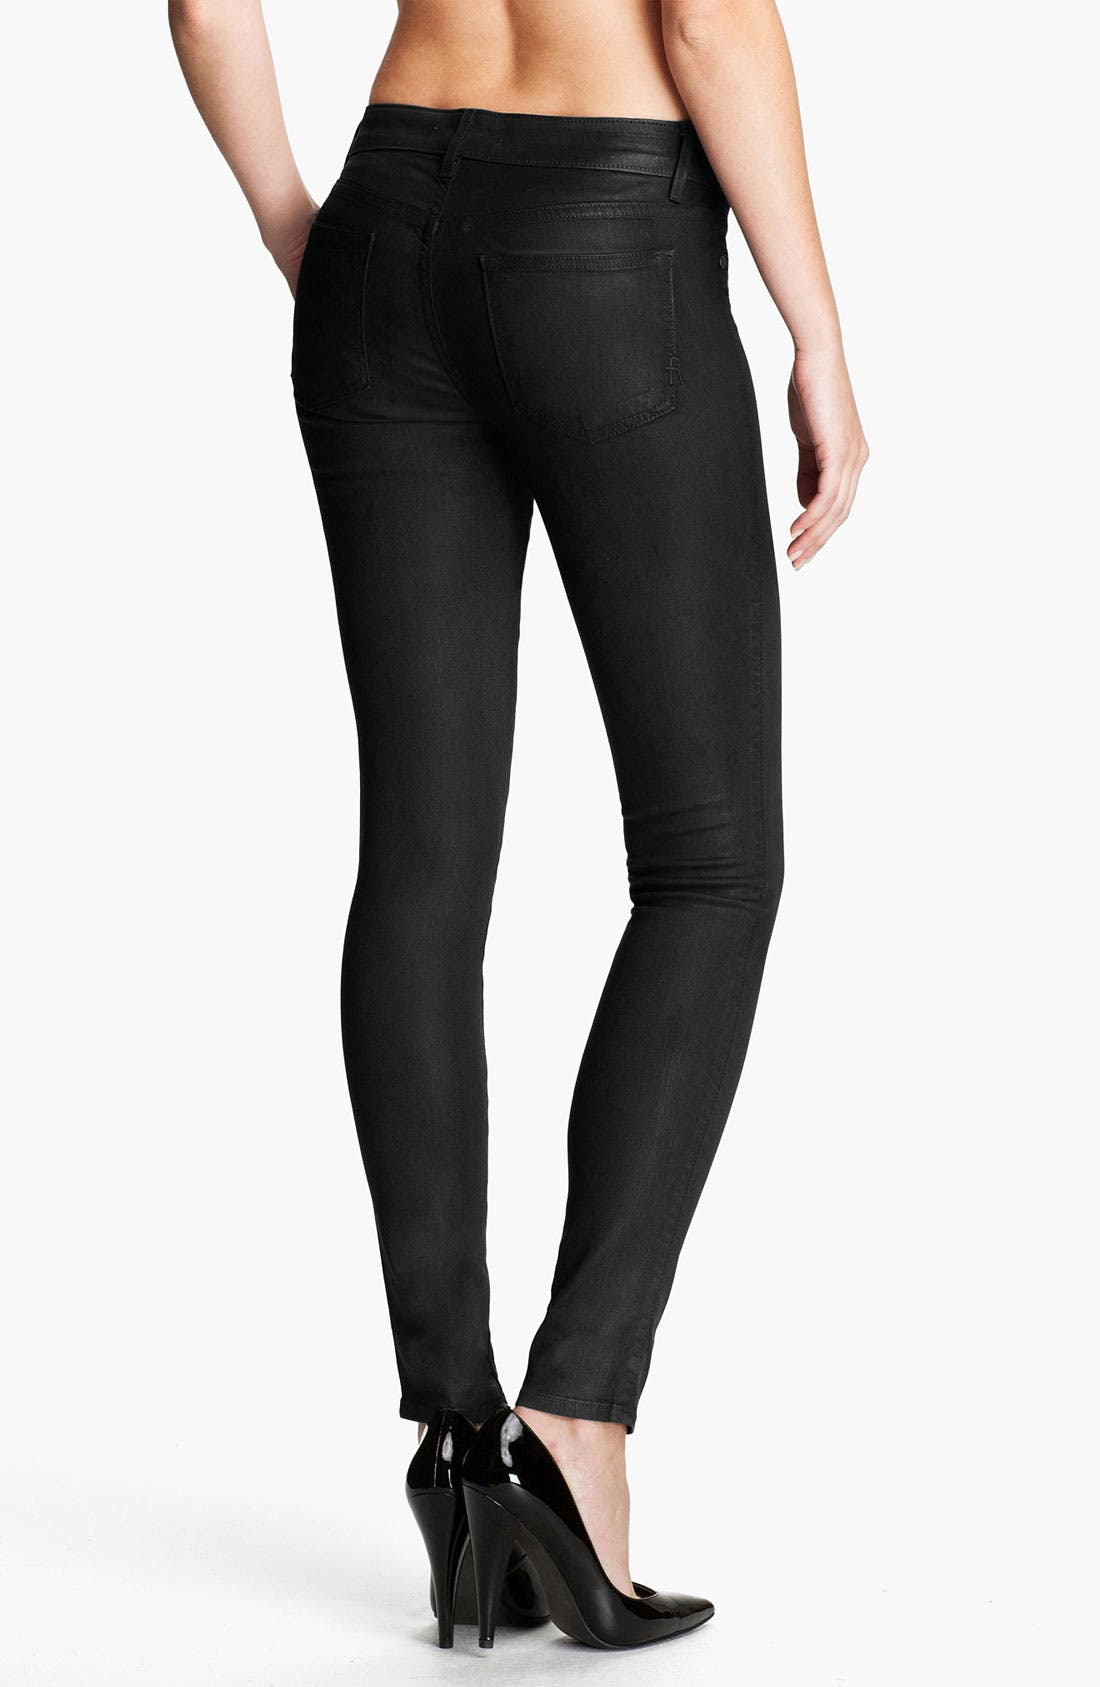 'Legacy Leather' Faux Leather Skinny Jeans,                             Main thumbnail 1, color,                             001